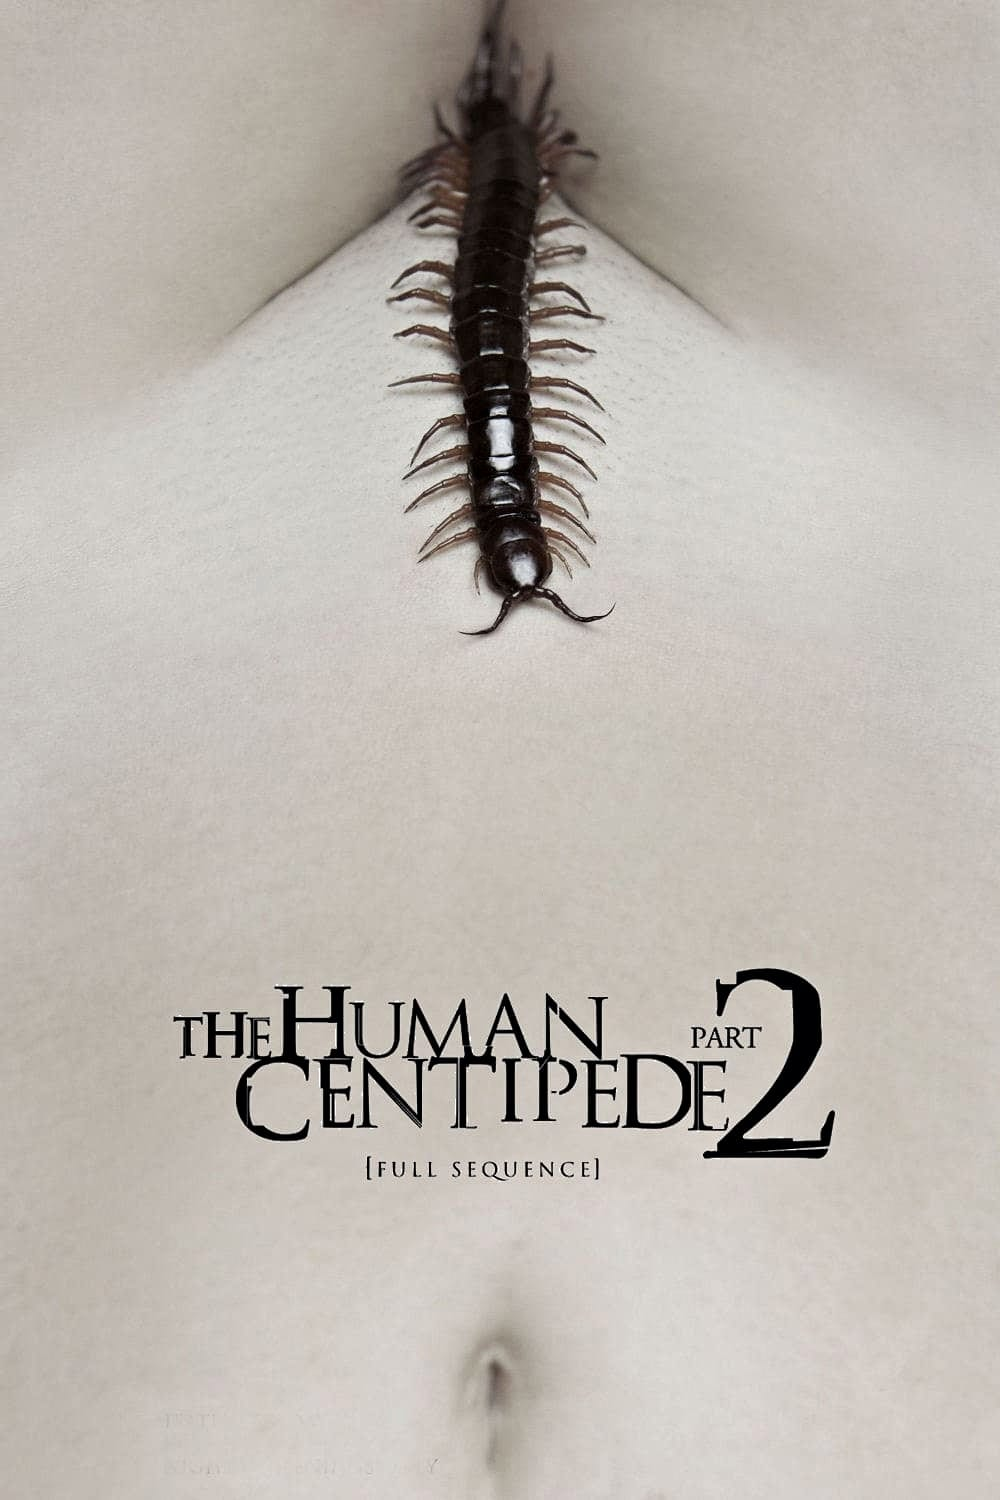 The Human Centiped 3 Streaming : human, centiped, streaming, Human, Centipede, (Full, Sequence), (2011), Movie., Where, Watch, Streaming, Online